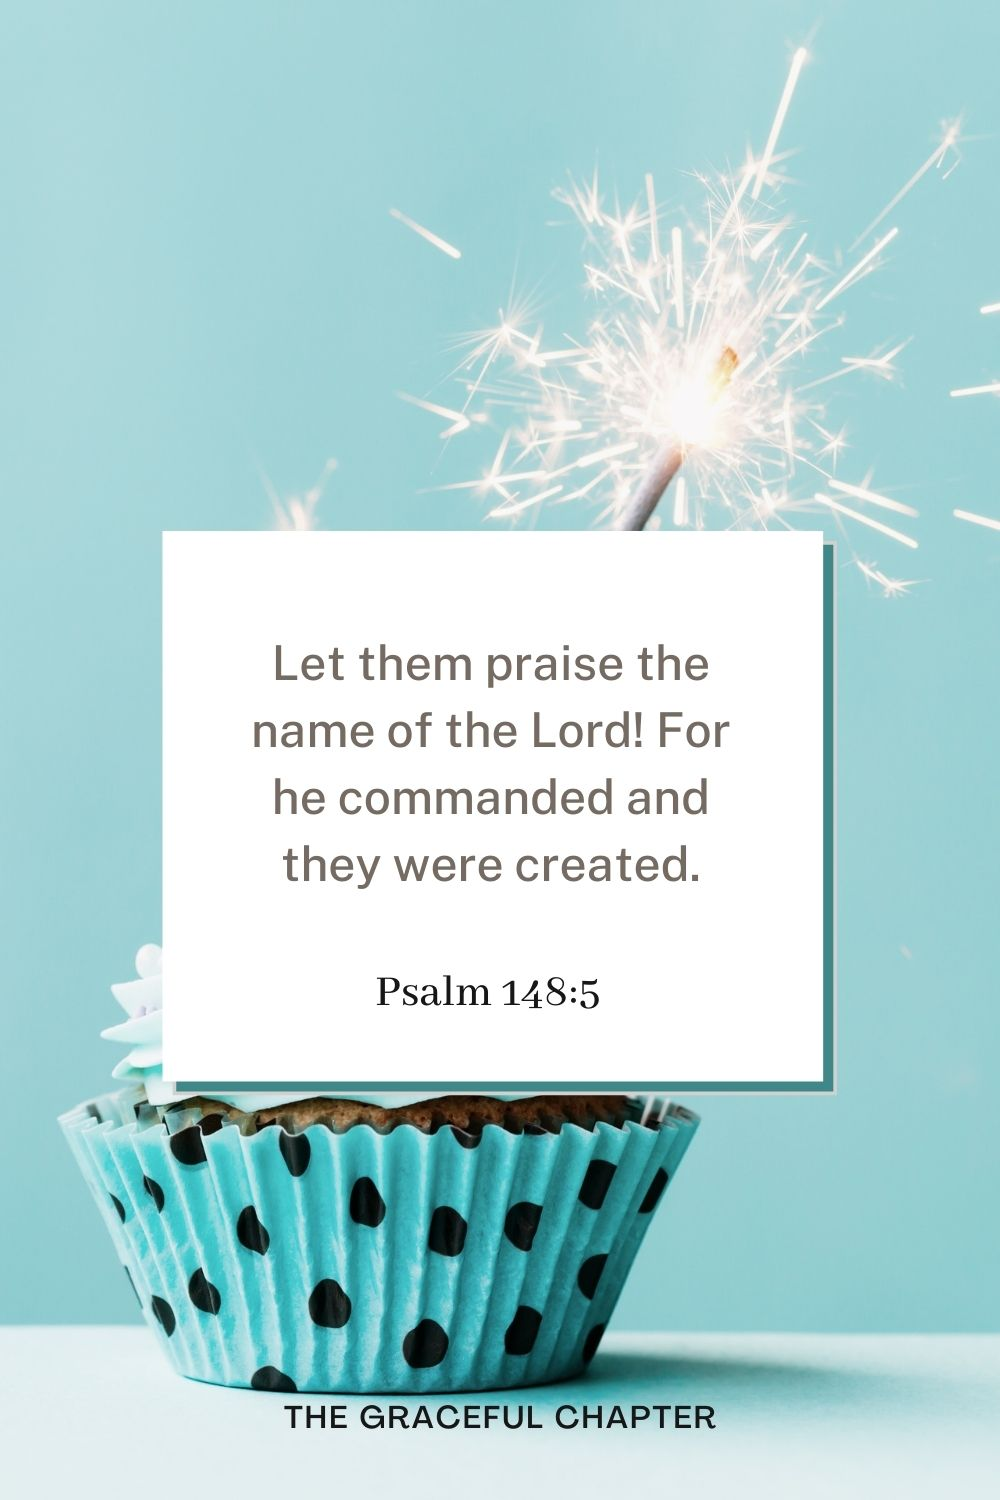 Let them praise the name of the Lord! For he commanded and they were created. Psalm 148:5